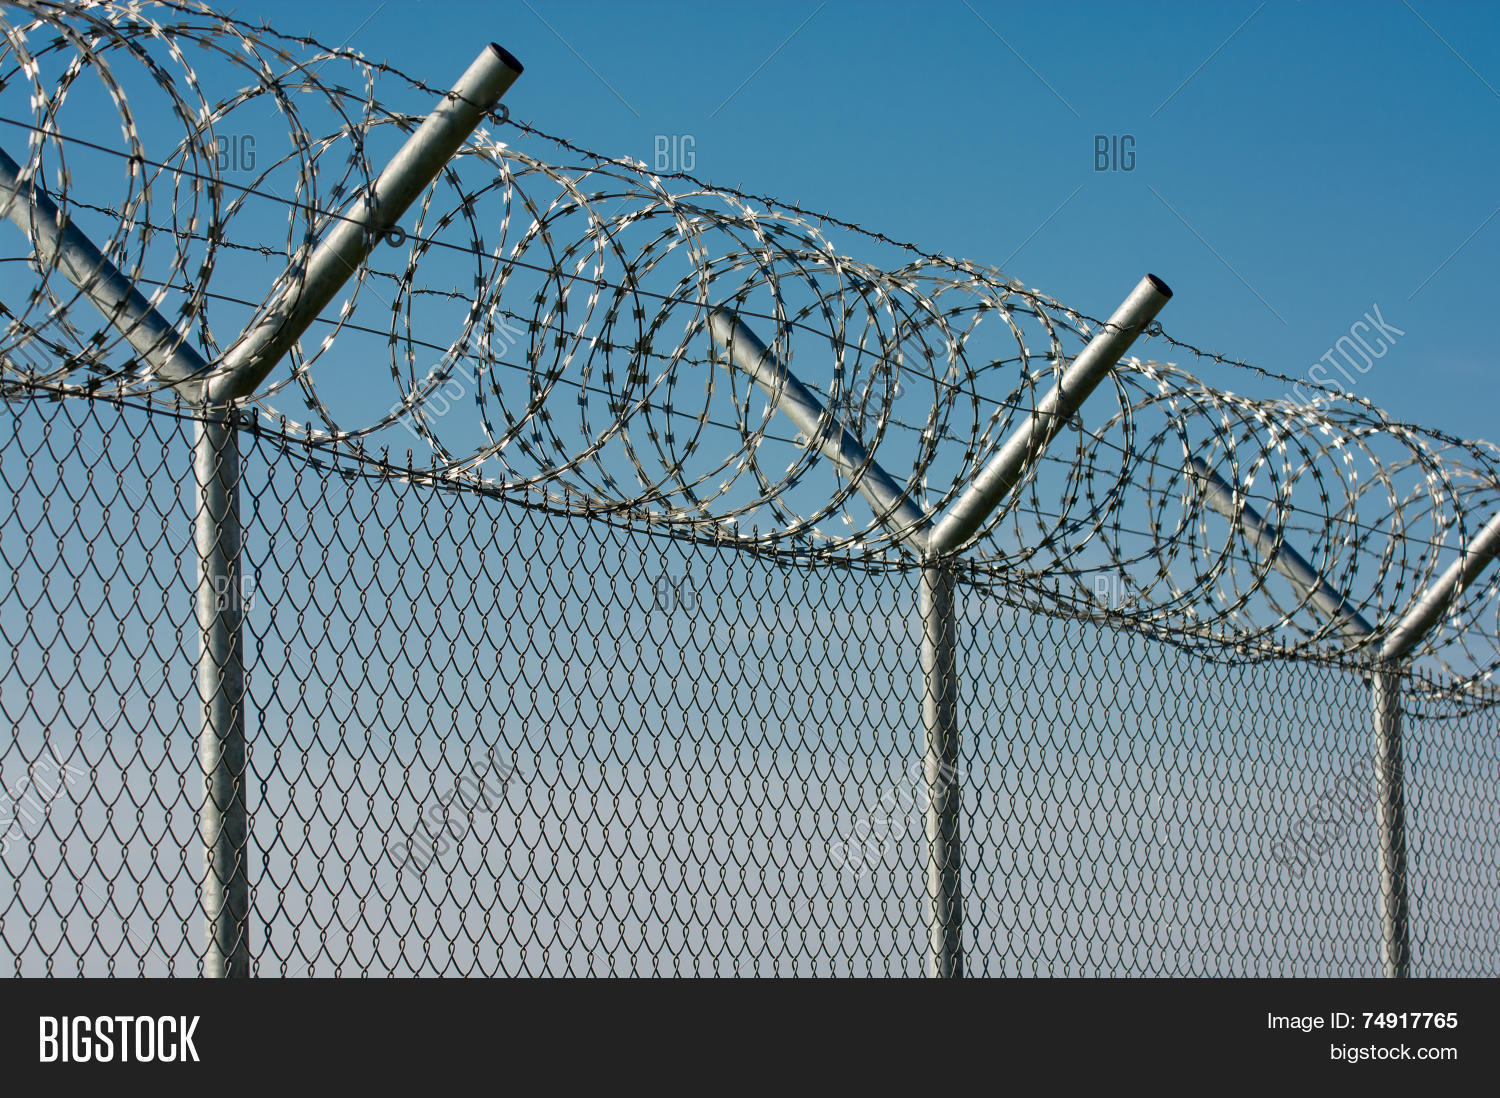 Barbed Wire Fence Image & Photo (Free Trial) | Bigstock